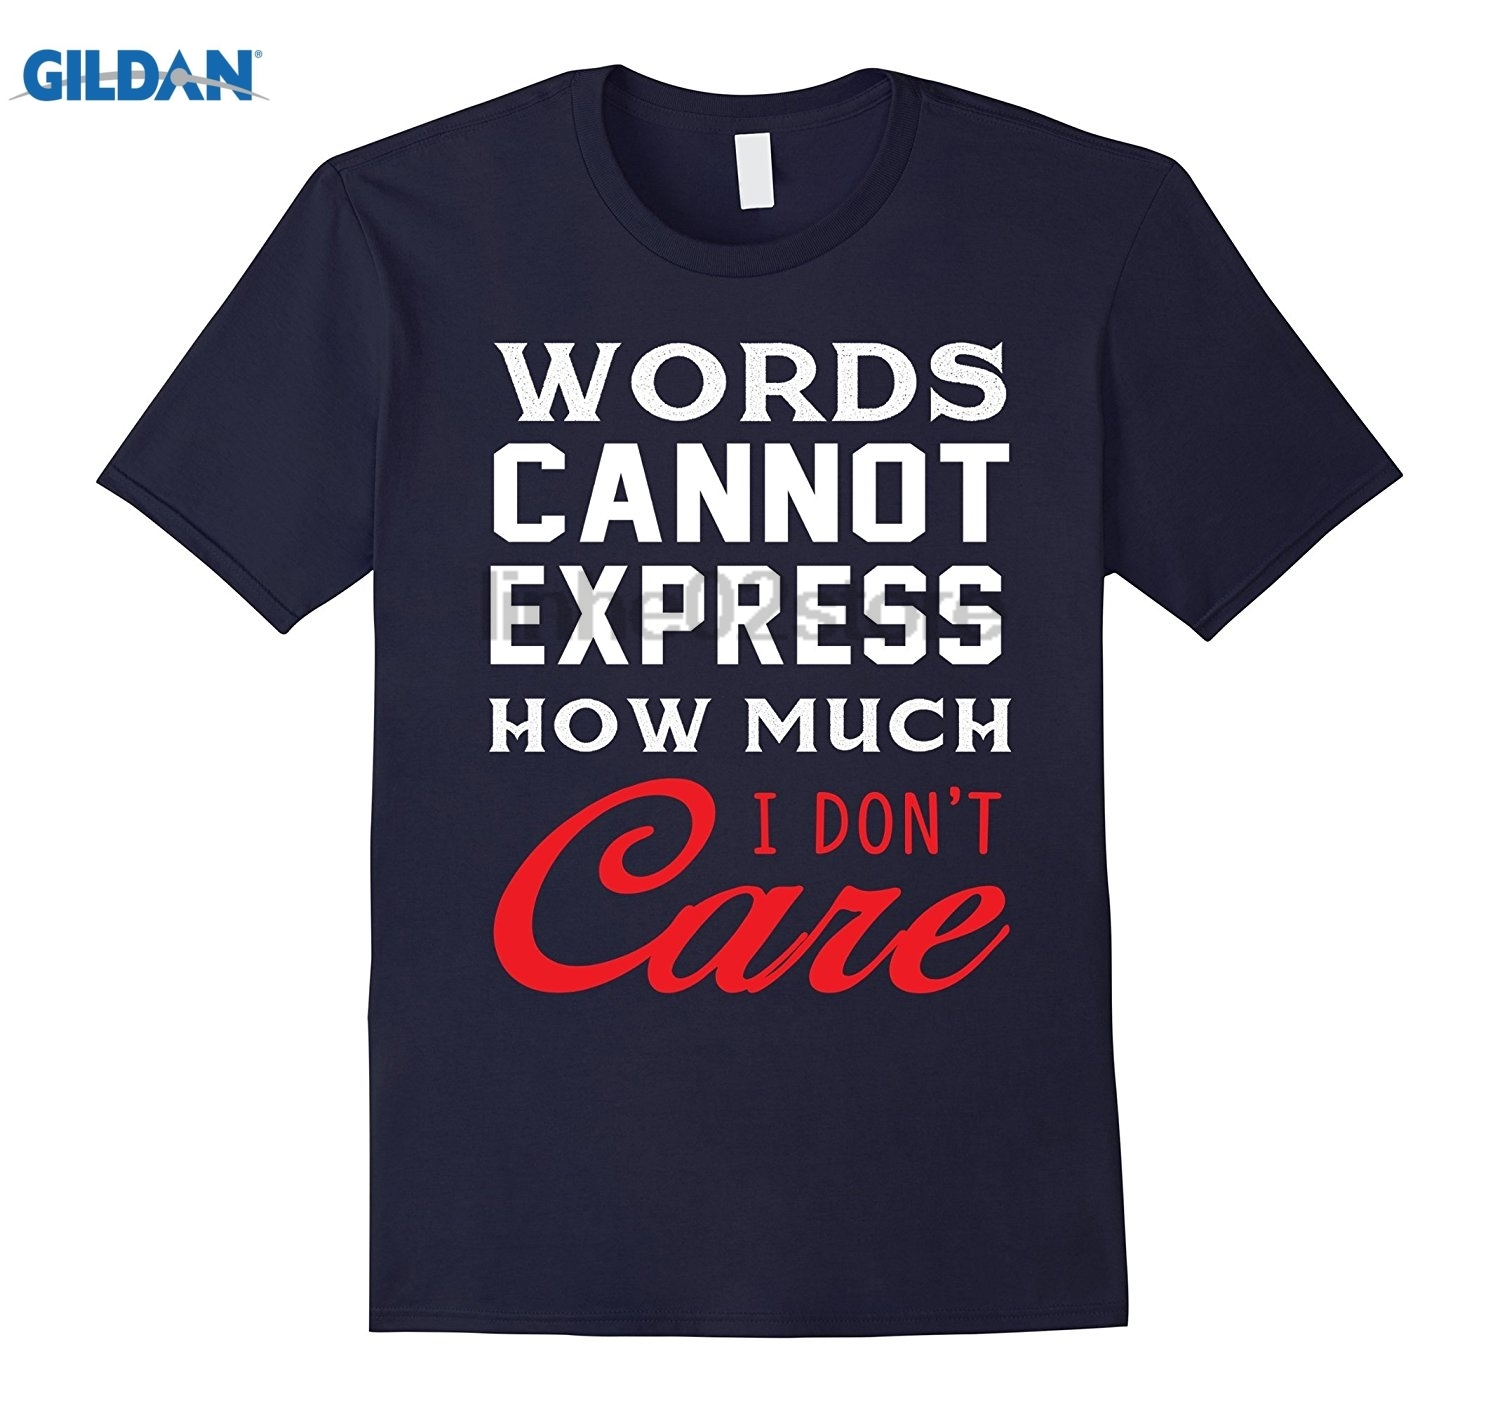 GILDAN Words Cannot Express How Much I Dont Care T-Shirt Womens T-shirt ...